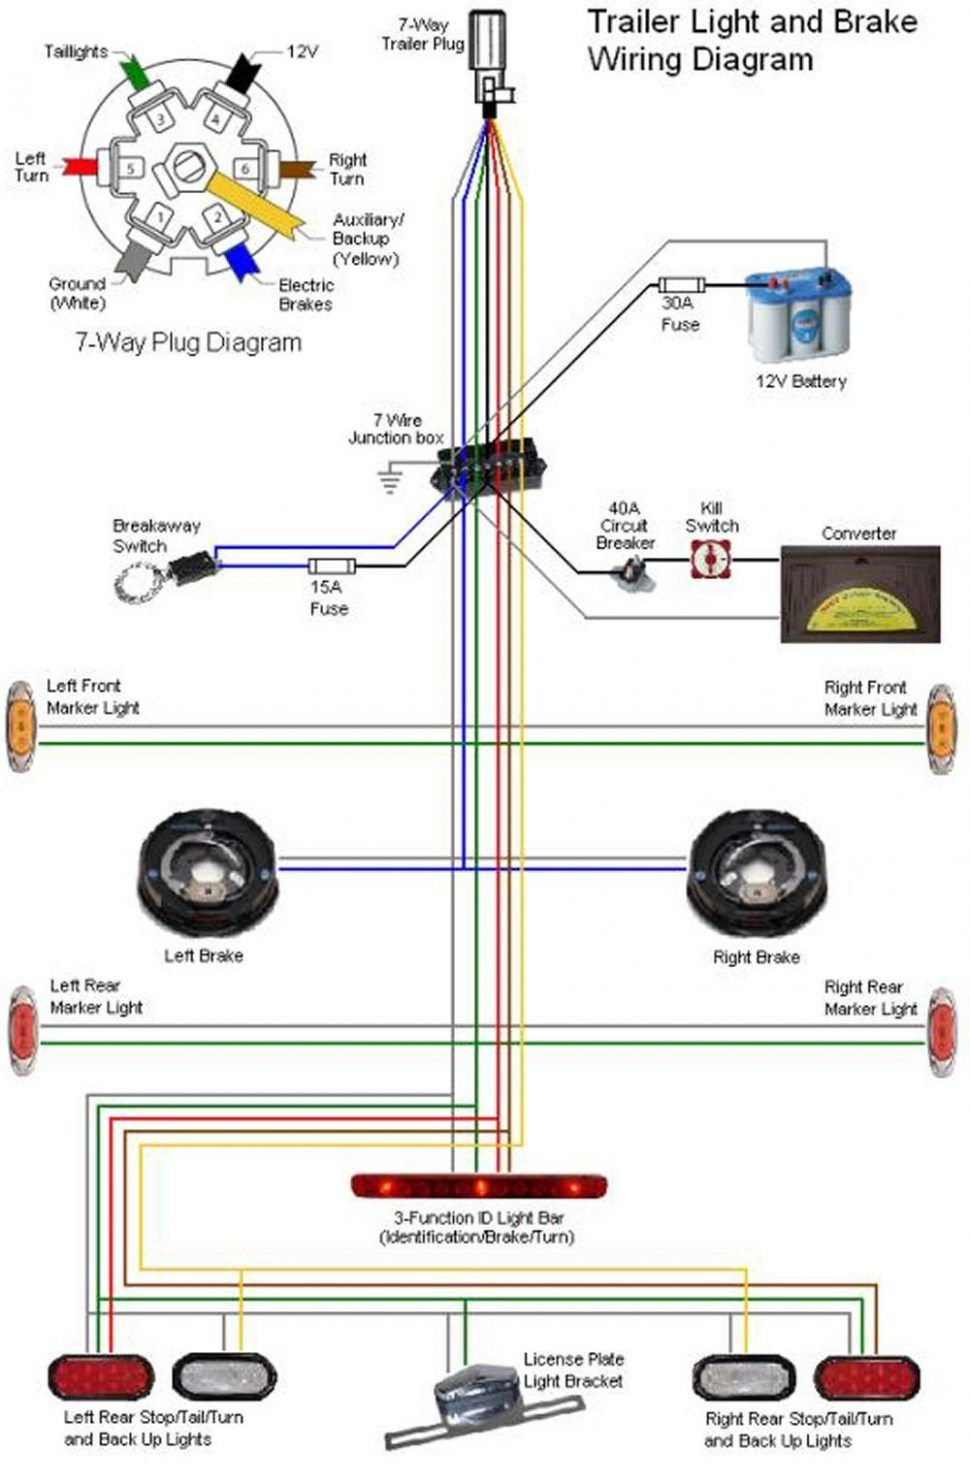 Seven Pin Trailer Wiring Diagram | Wiring Diagrams Gallery - Rv Trailer Wiring Diagram 7 Way